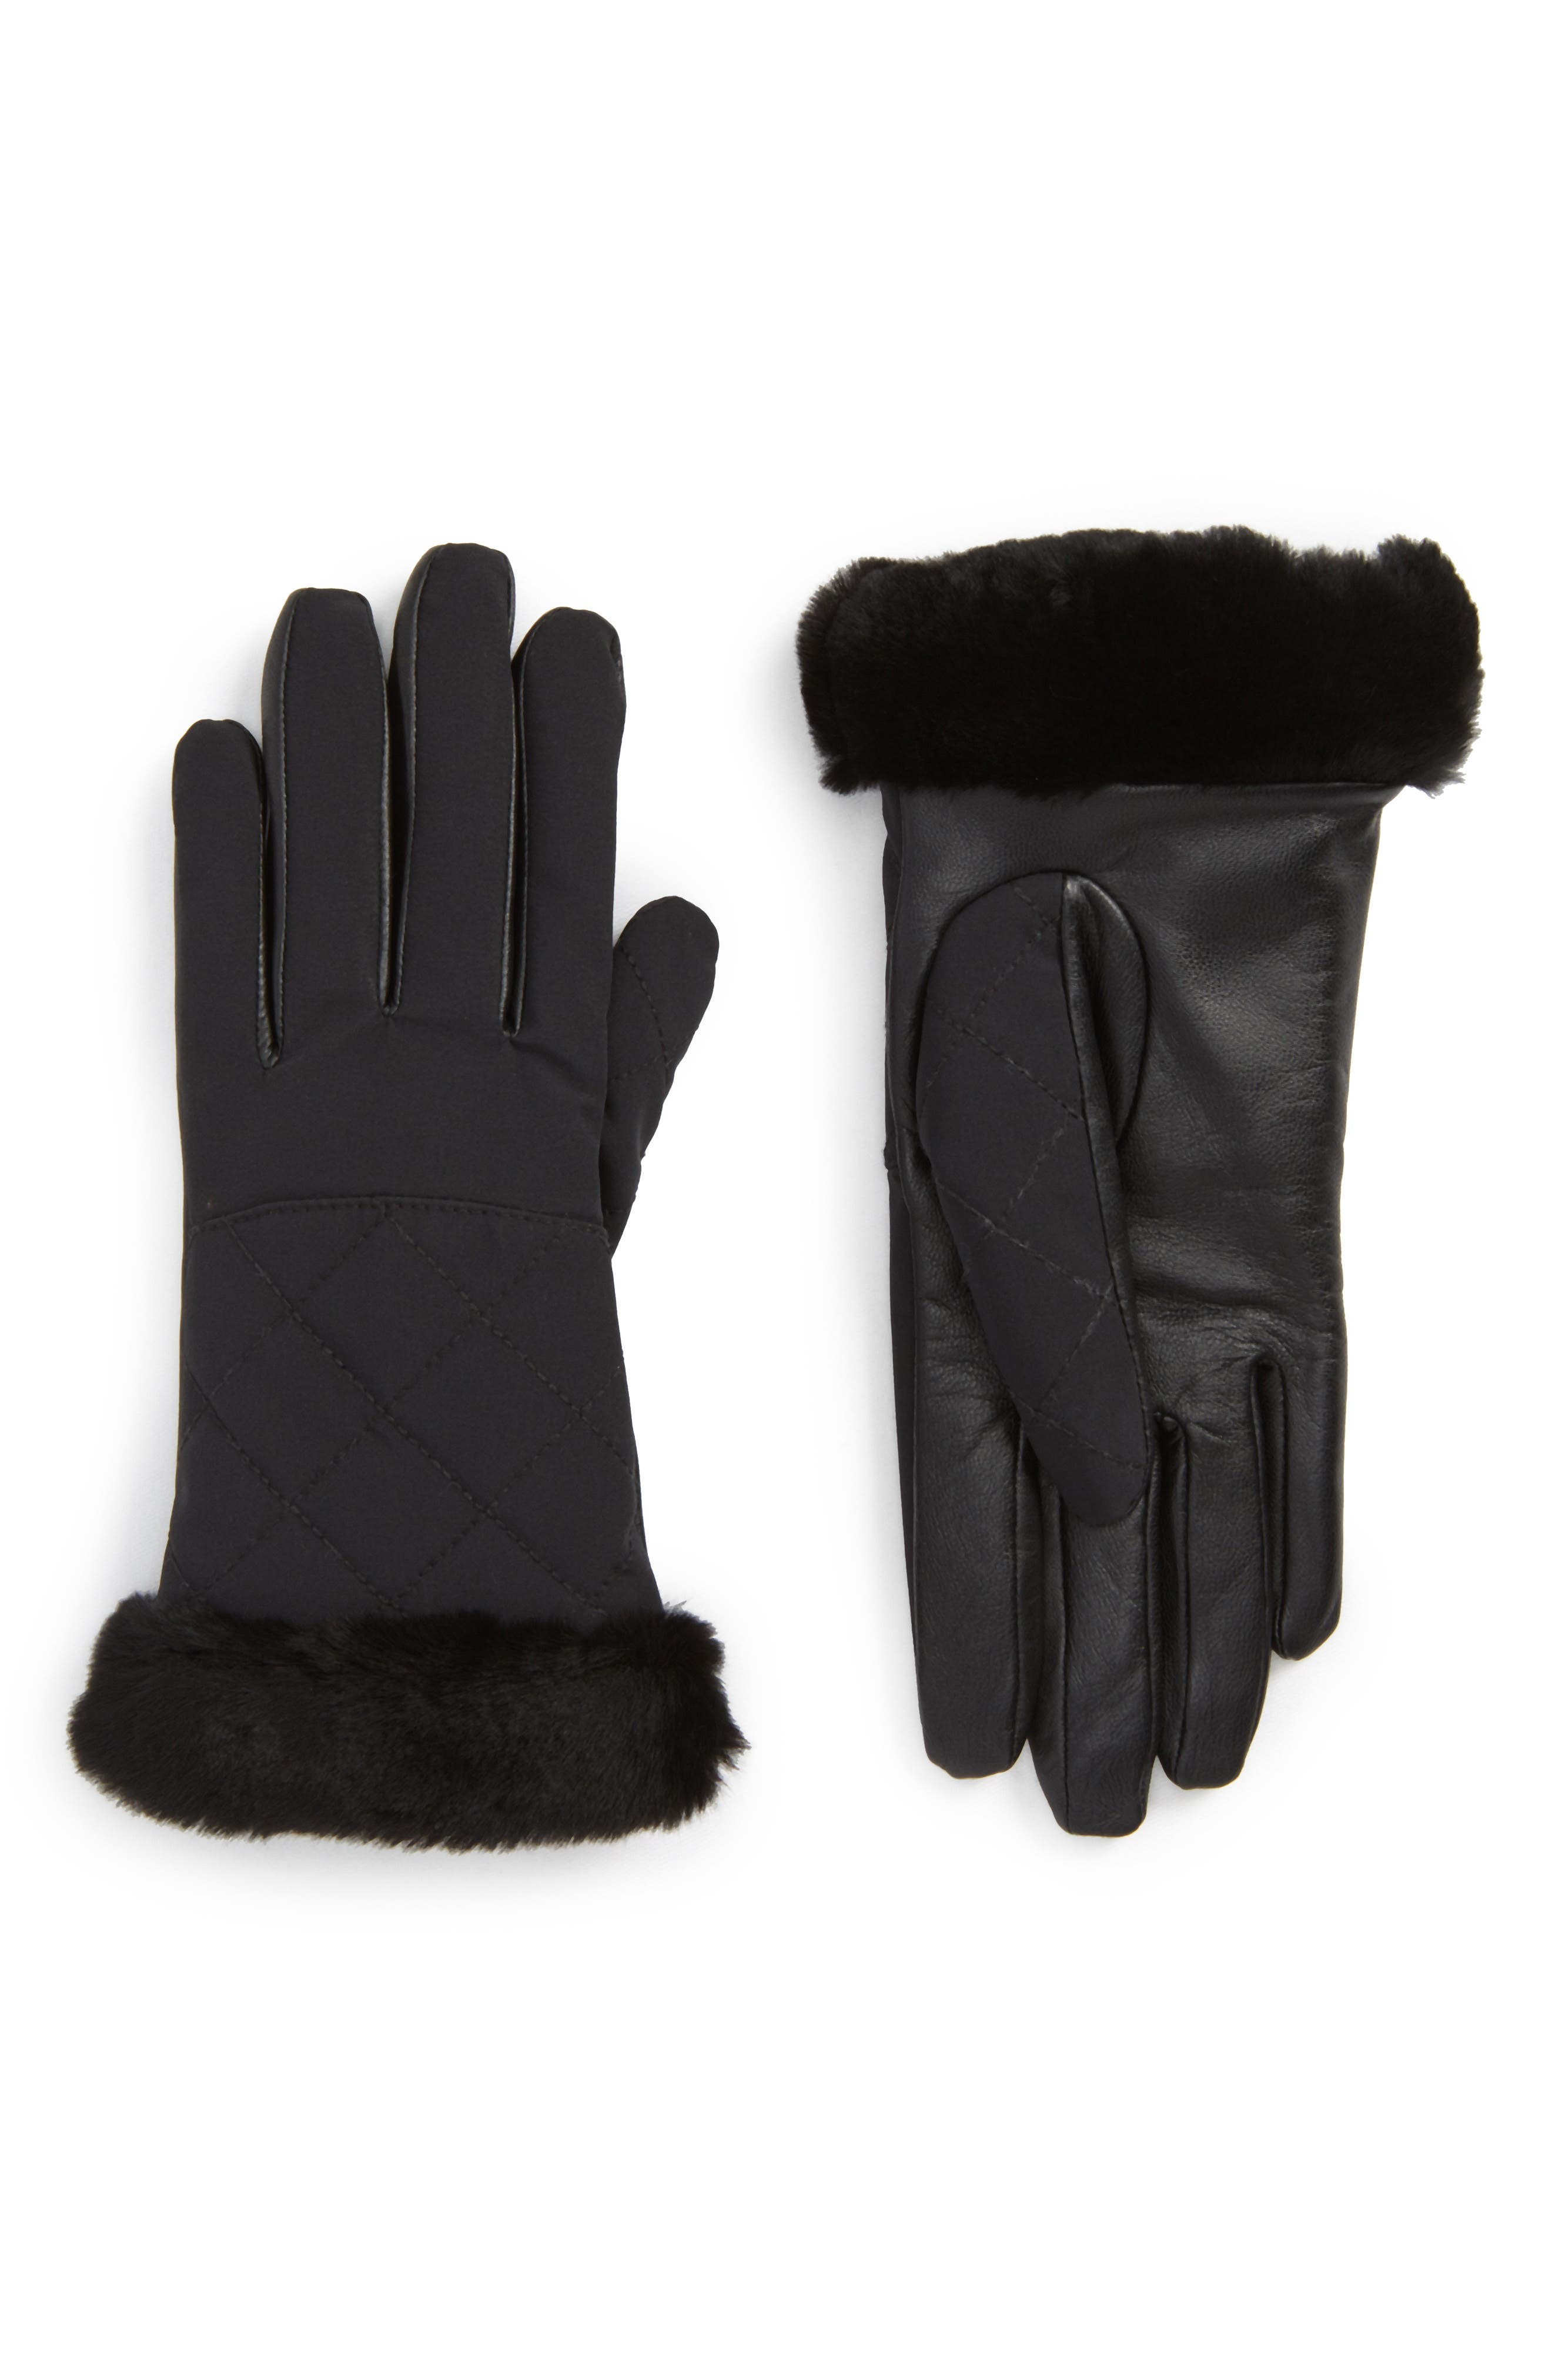 UGG<sup>®</sup> Water Resistant Touchscreen Quilted Nylon, Leather & Genuine Shearling Gloves,                         Main,                         color,